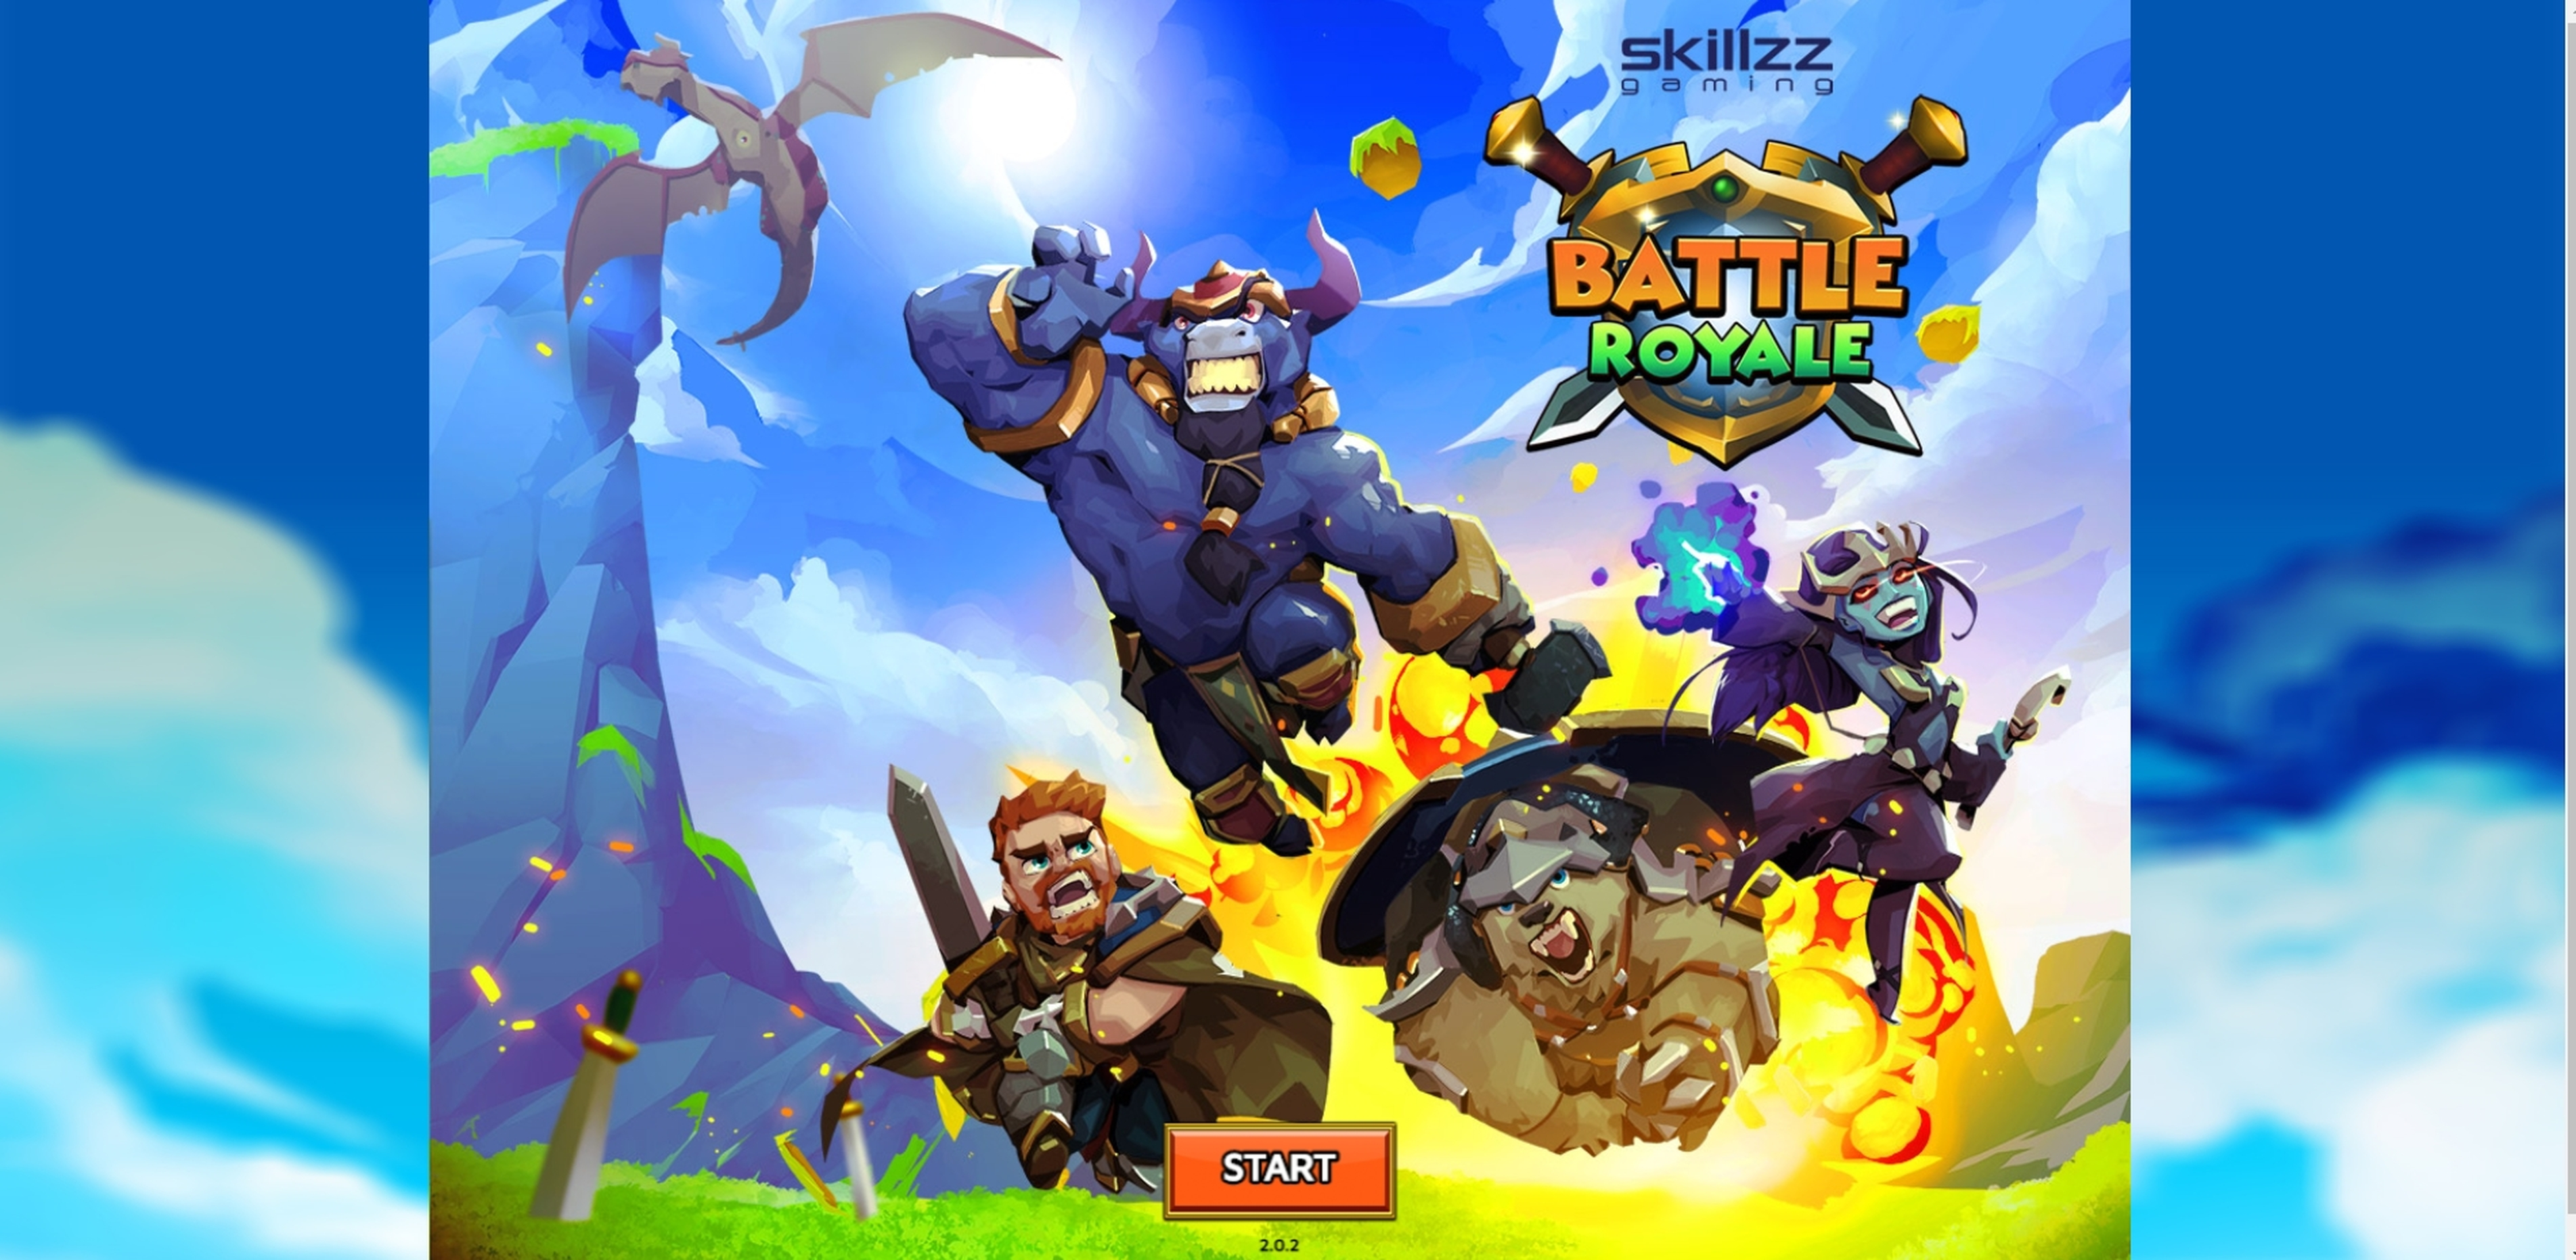 Play Battle Royale (Skillzzgaming) Free Casino Slot Game by Skillzzgaming